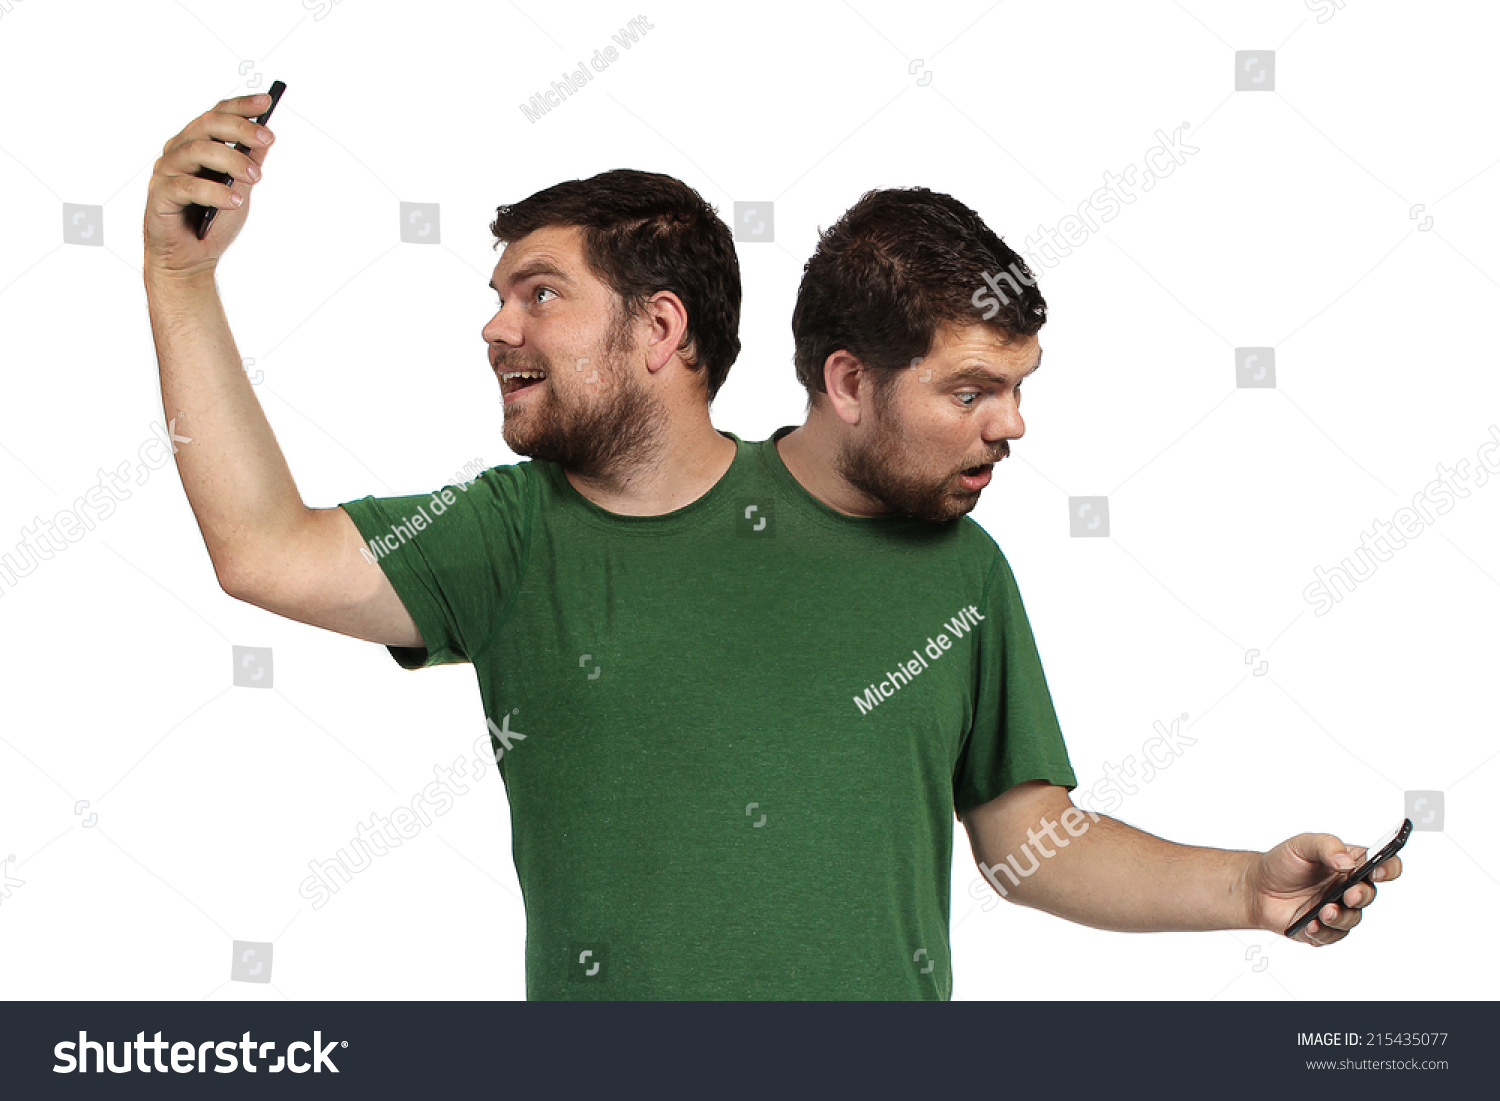 checking phone Person